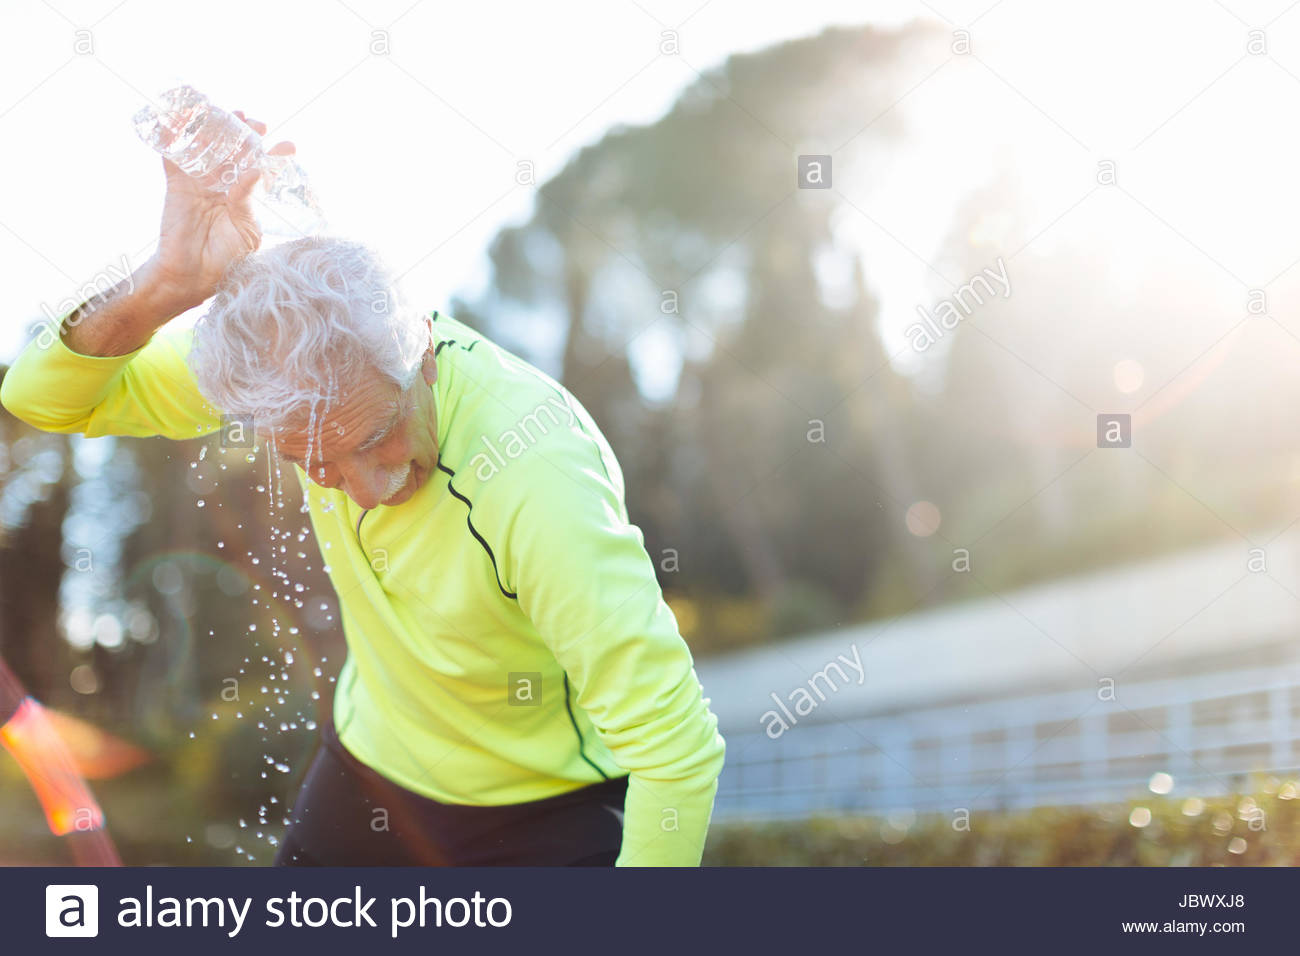 Senior man cooling off by pouring water over head - Stock Image